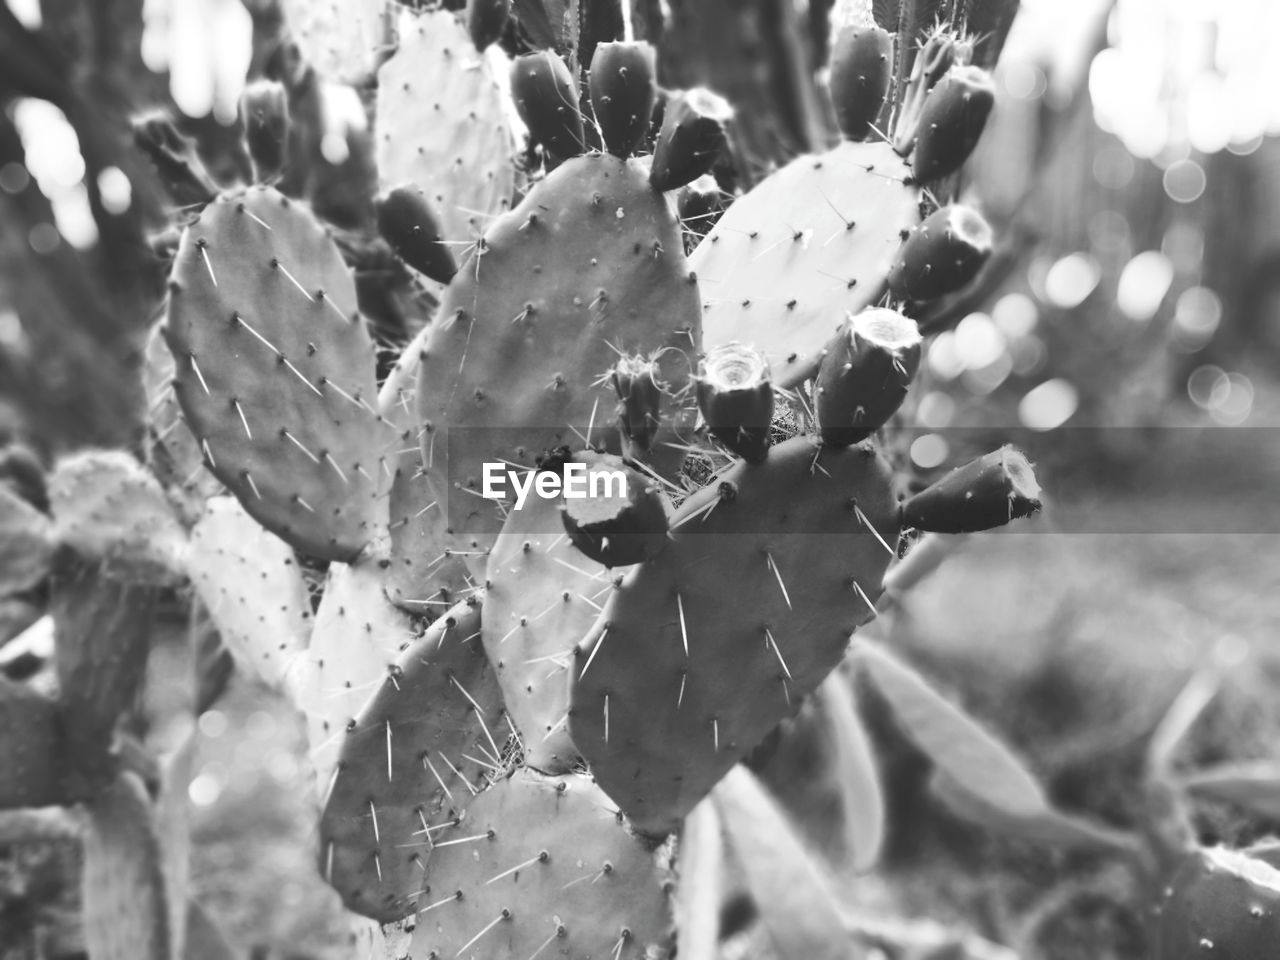 growth, nature, focus on foreground, outdoors, day, close-up, fragility, beauty in nature, no people, plant, freshness, flower, prickly pear cactus, flower head